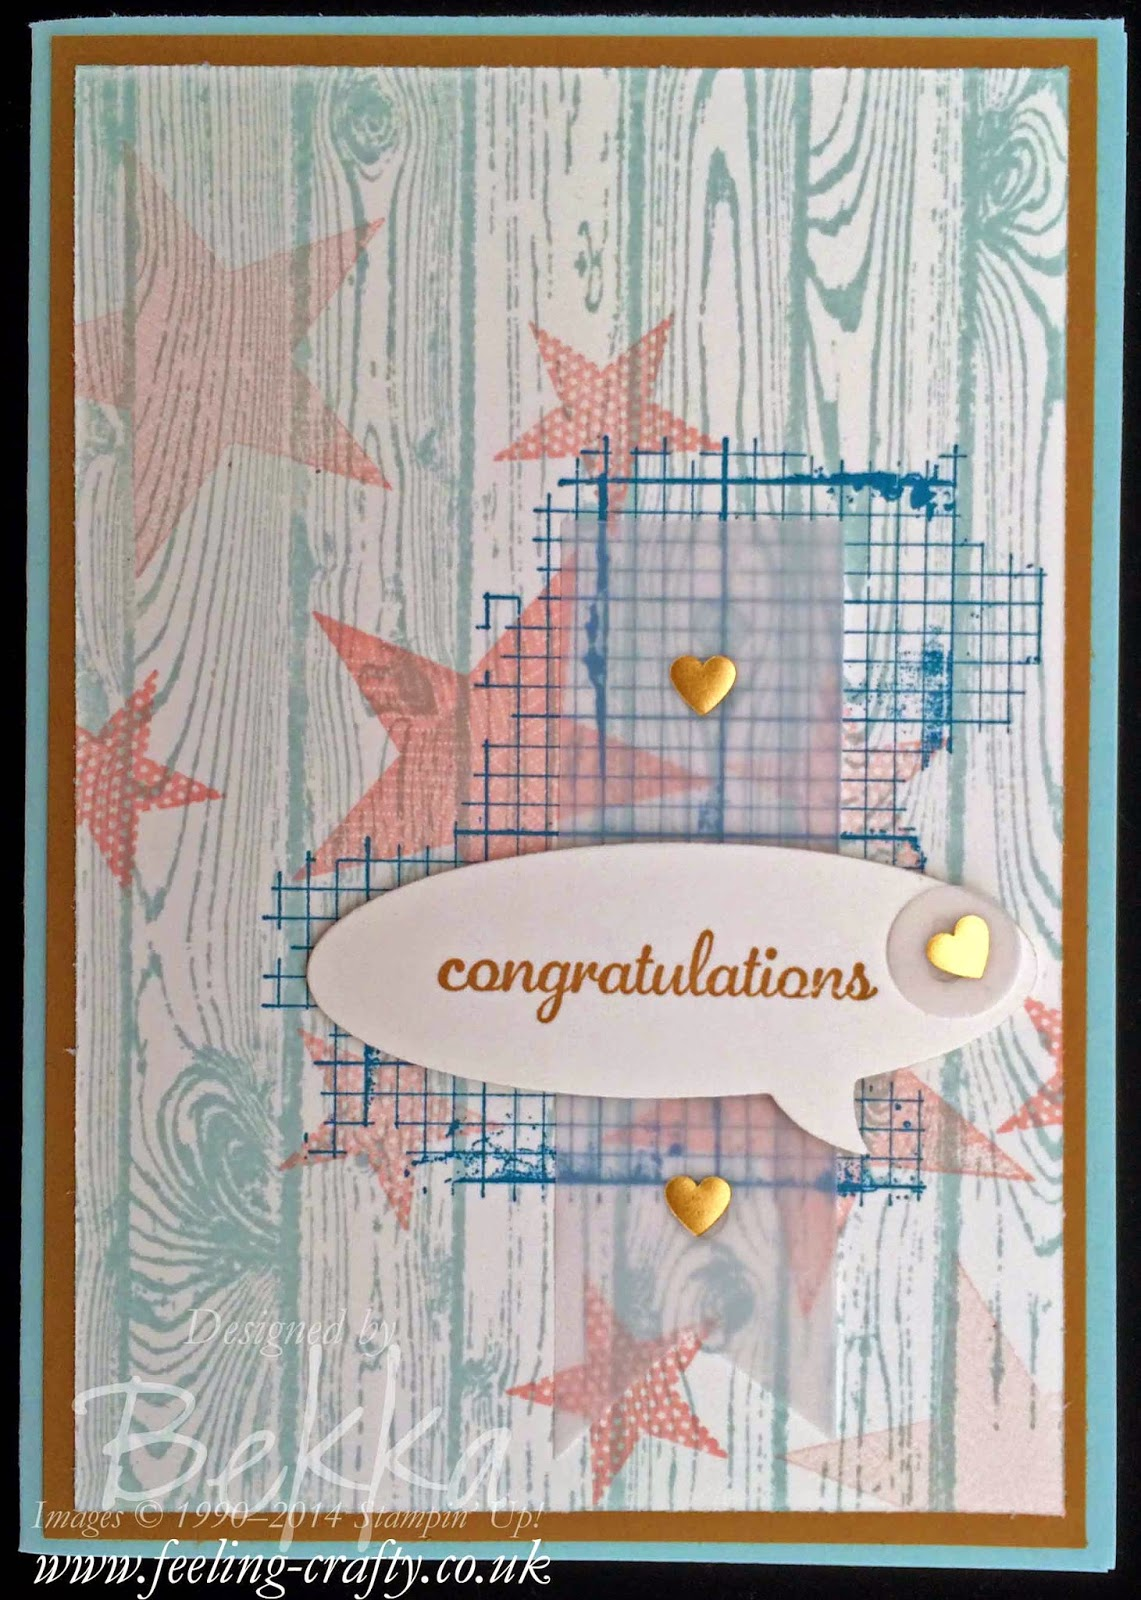 Congratulations Card made with Stampin' Up! Supplies which you can get here